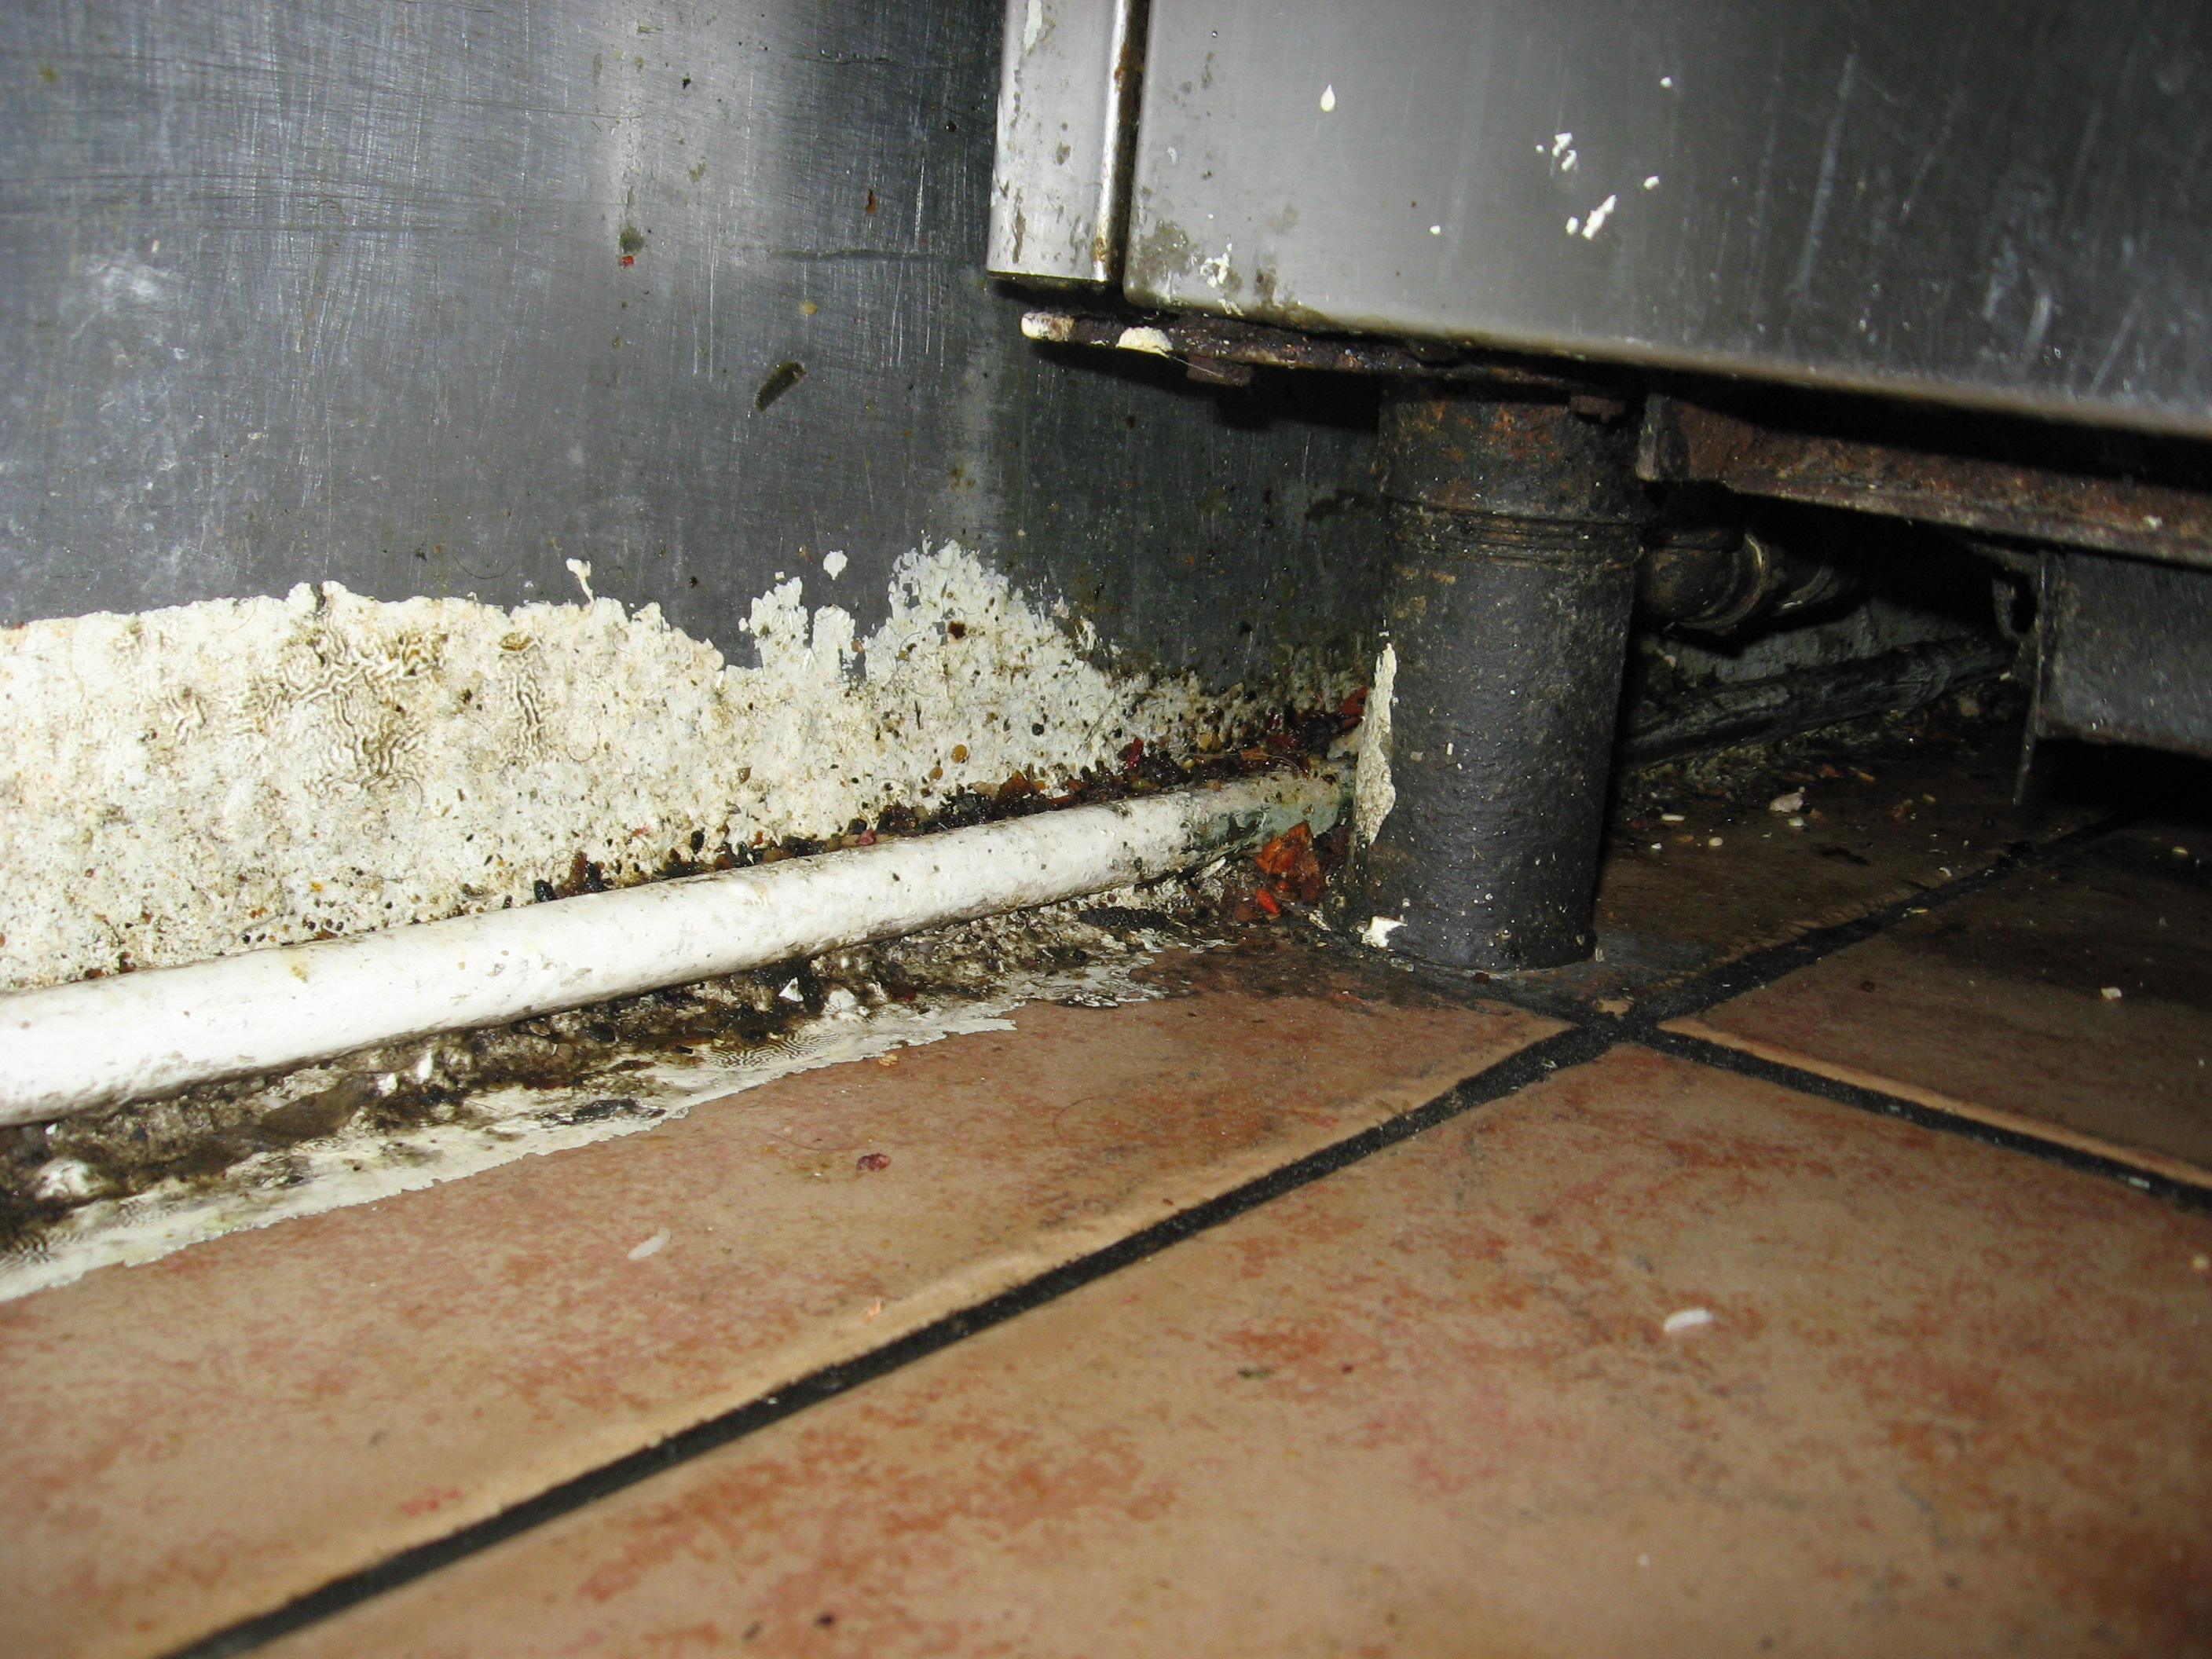 food safety poor hygiene standards leads to fine for takaway click to enlarge